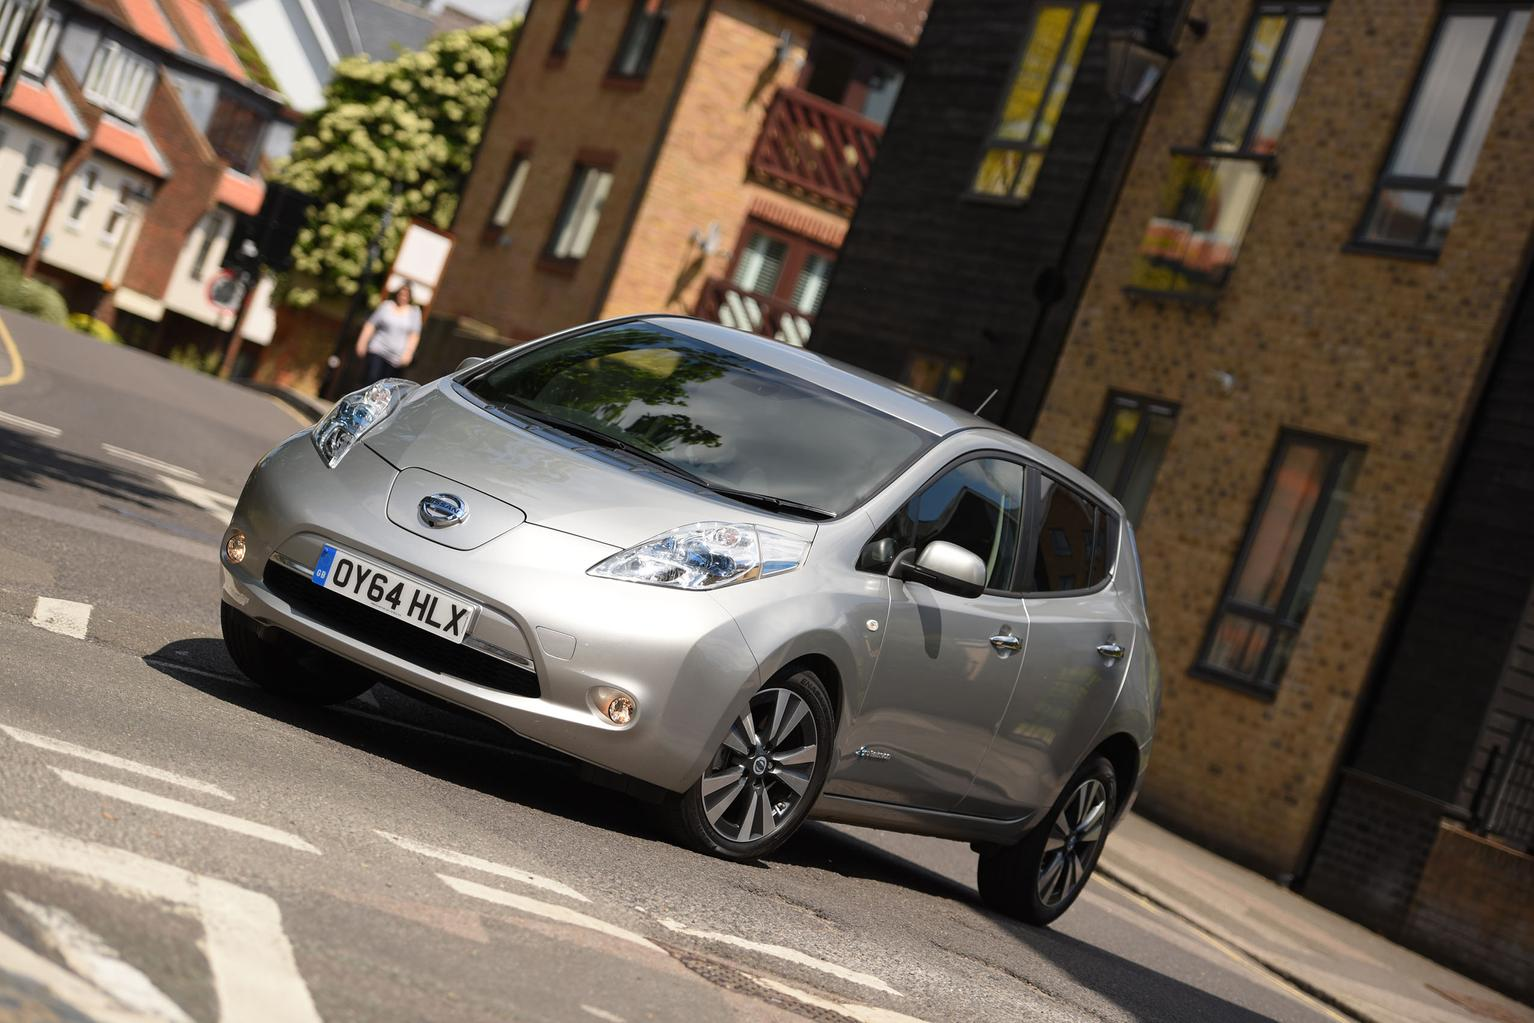 Only electrified cars will be sold in UK from 2040